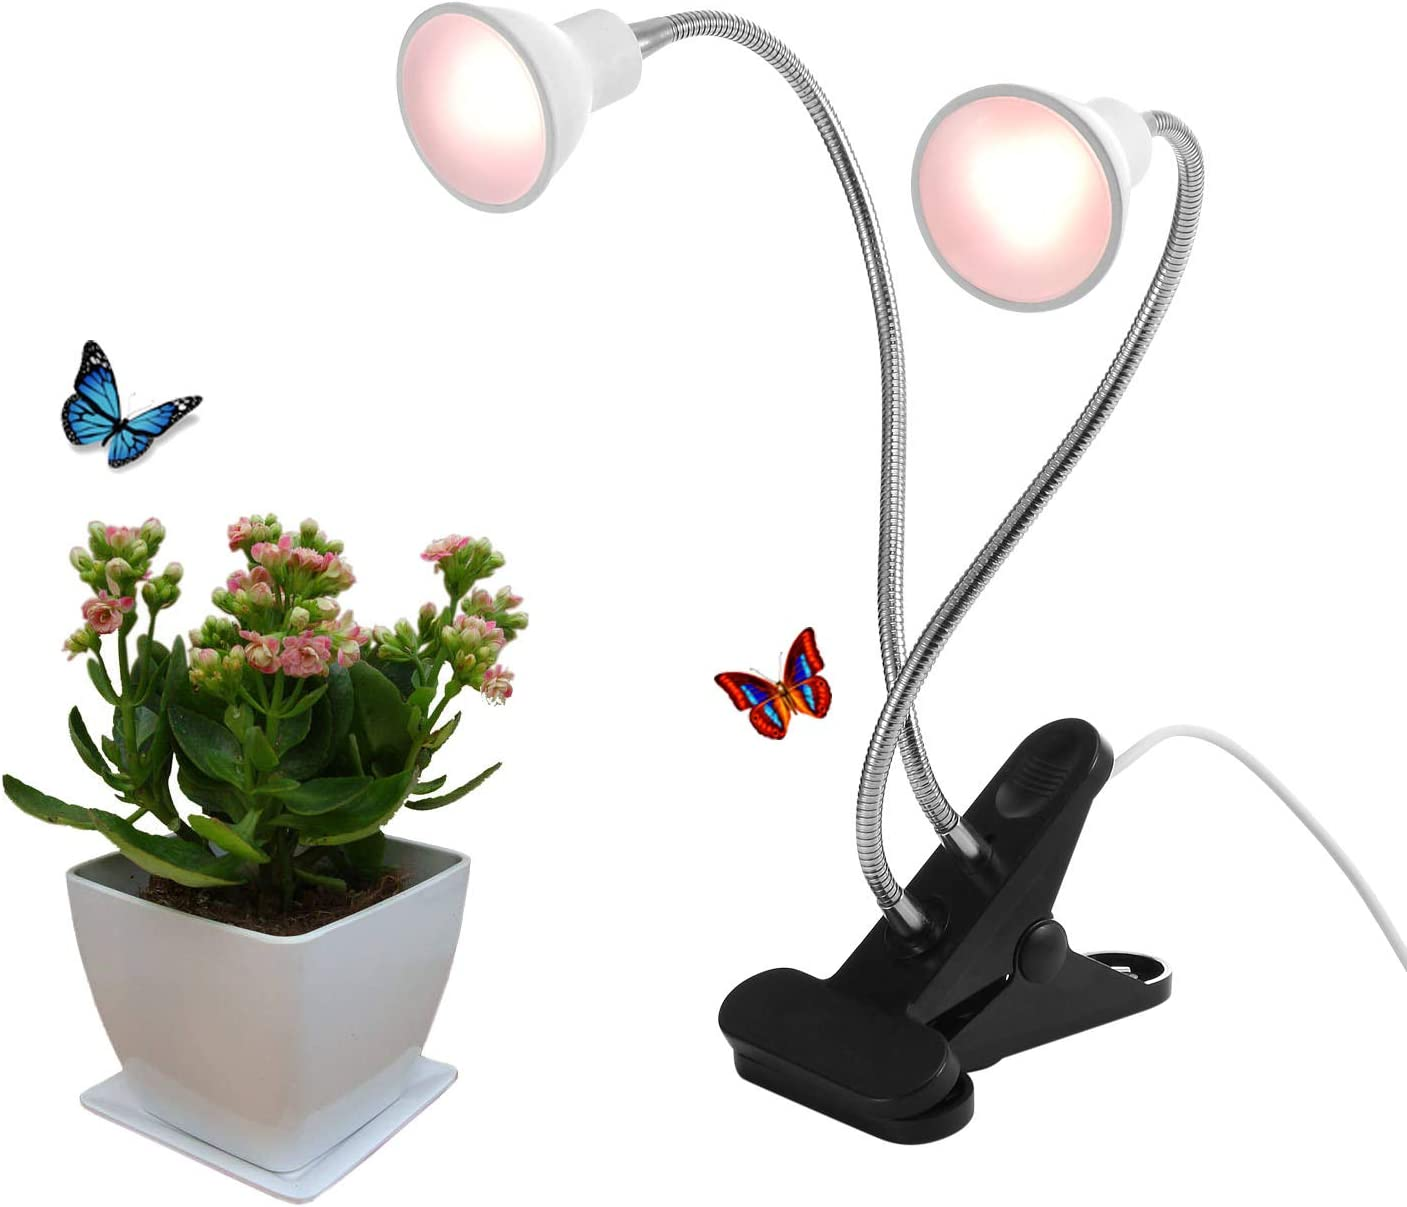 LED Grow Light for Potted Plants